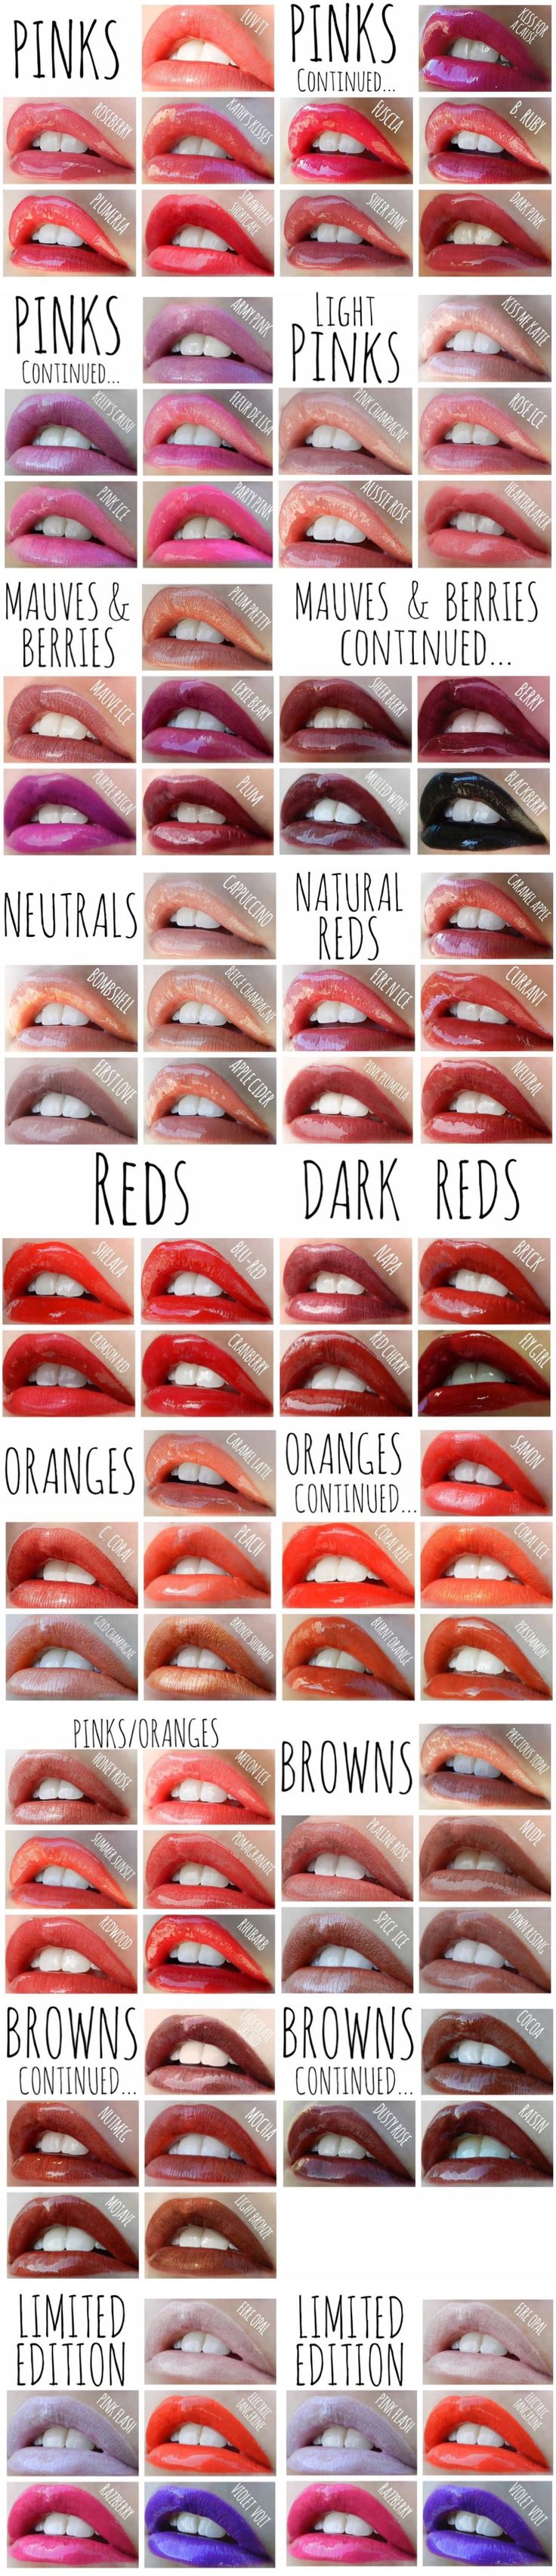 LipSense Colors @GlamorousLipTips on Facebook and Instagram Distributor ID: 228130